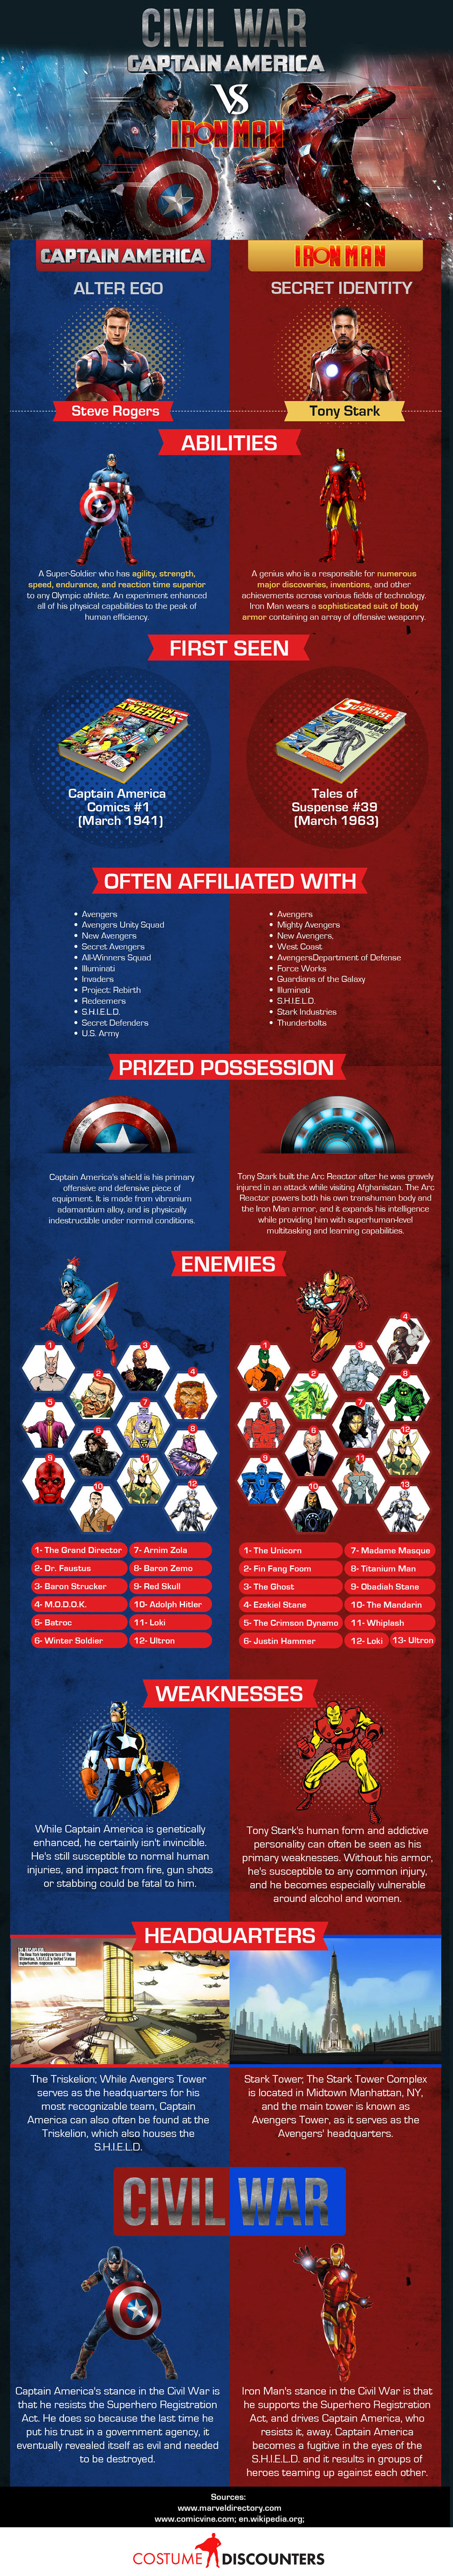 Civil War Captain America vs Ironman - Movie Infographic